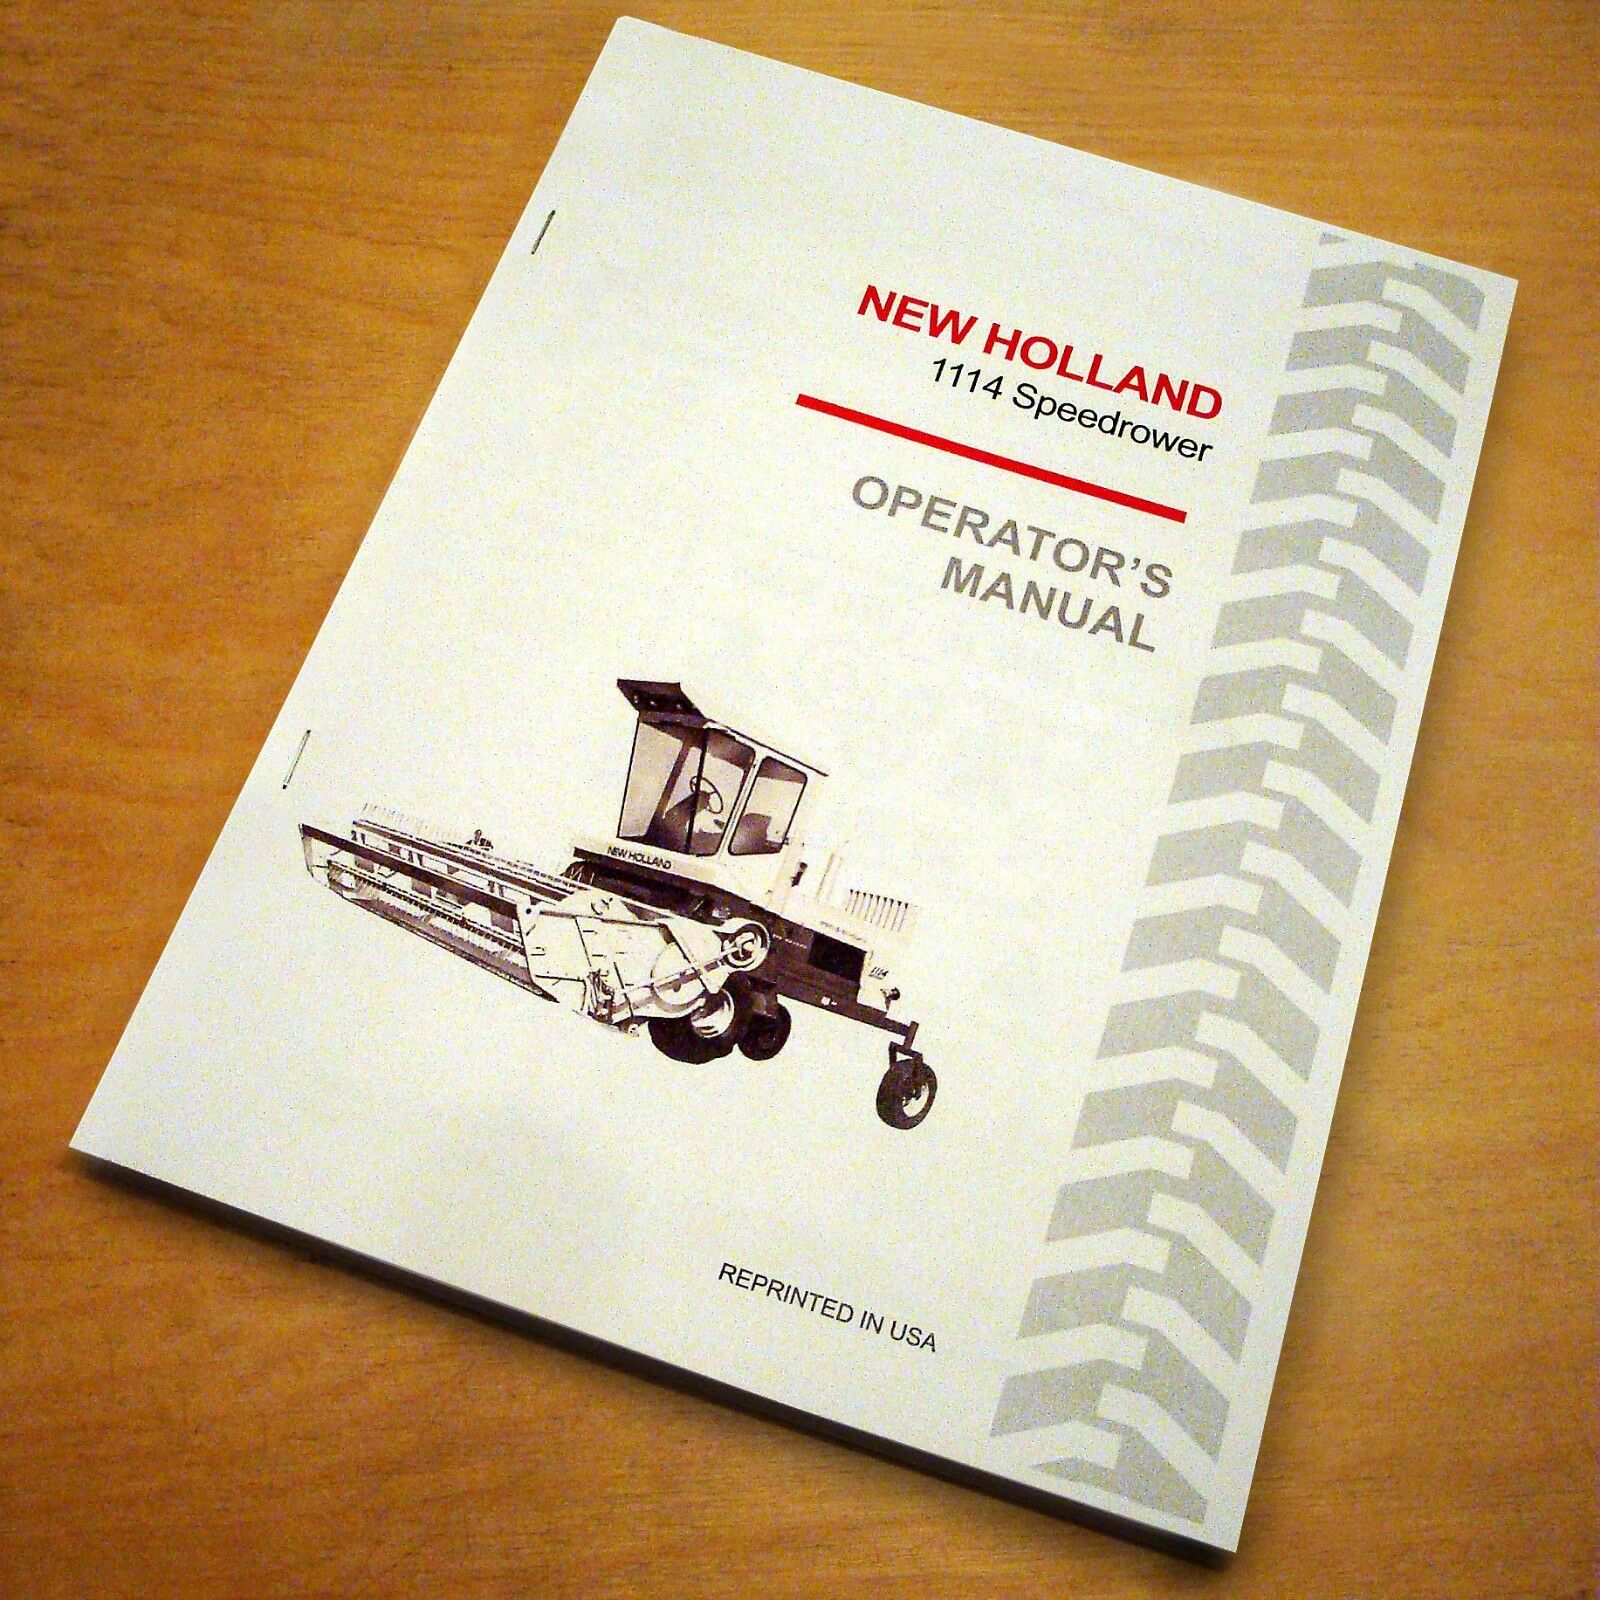 New Holland 1114 SpeedRower Swather Operator's Owners Book Guide Manual NH  1 of 5FREE Shipping ...